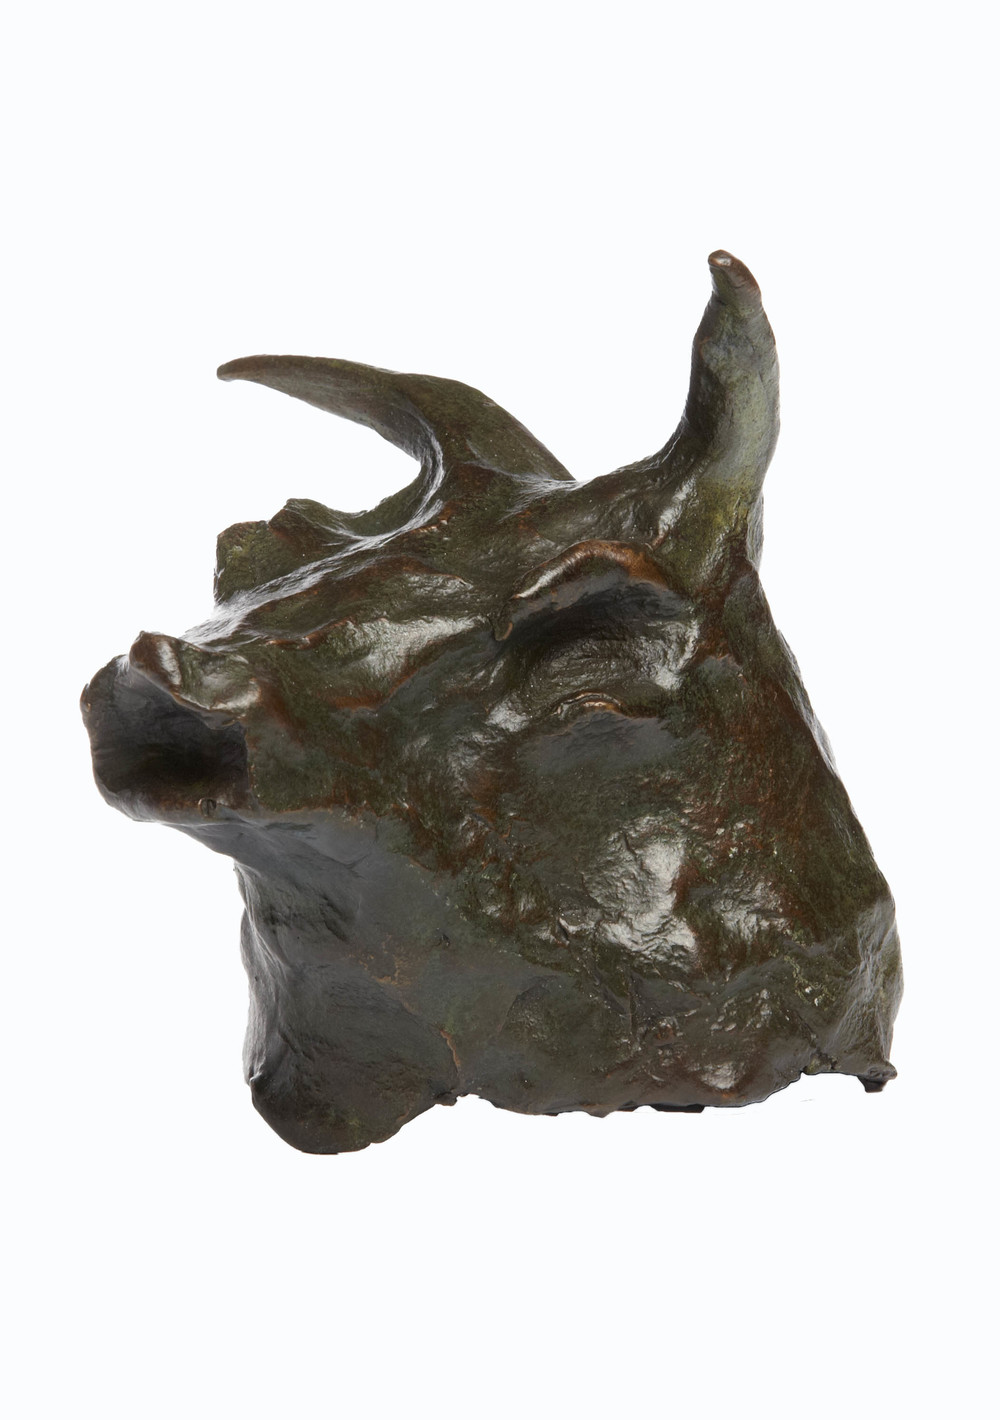 Adam Cullen - Bull's Head, 2011